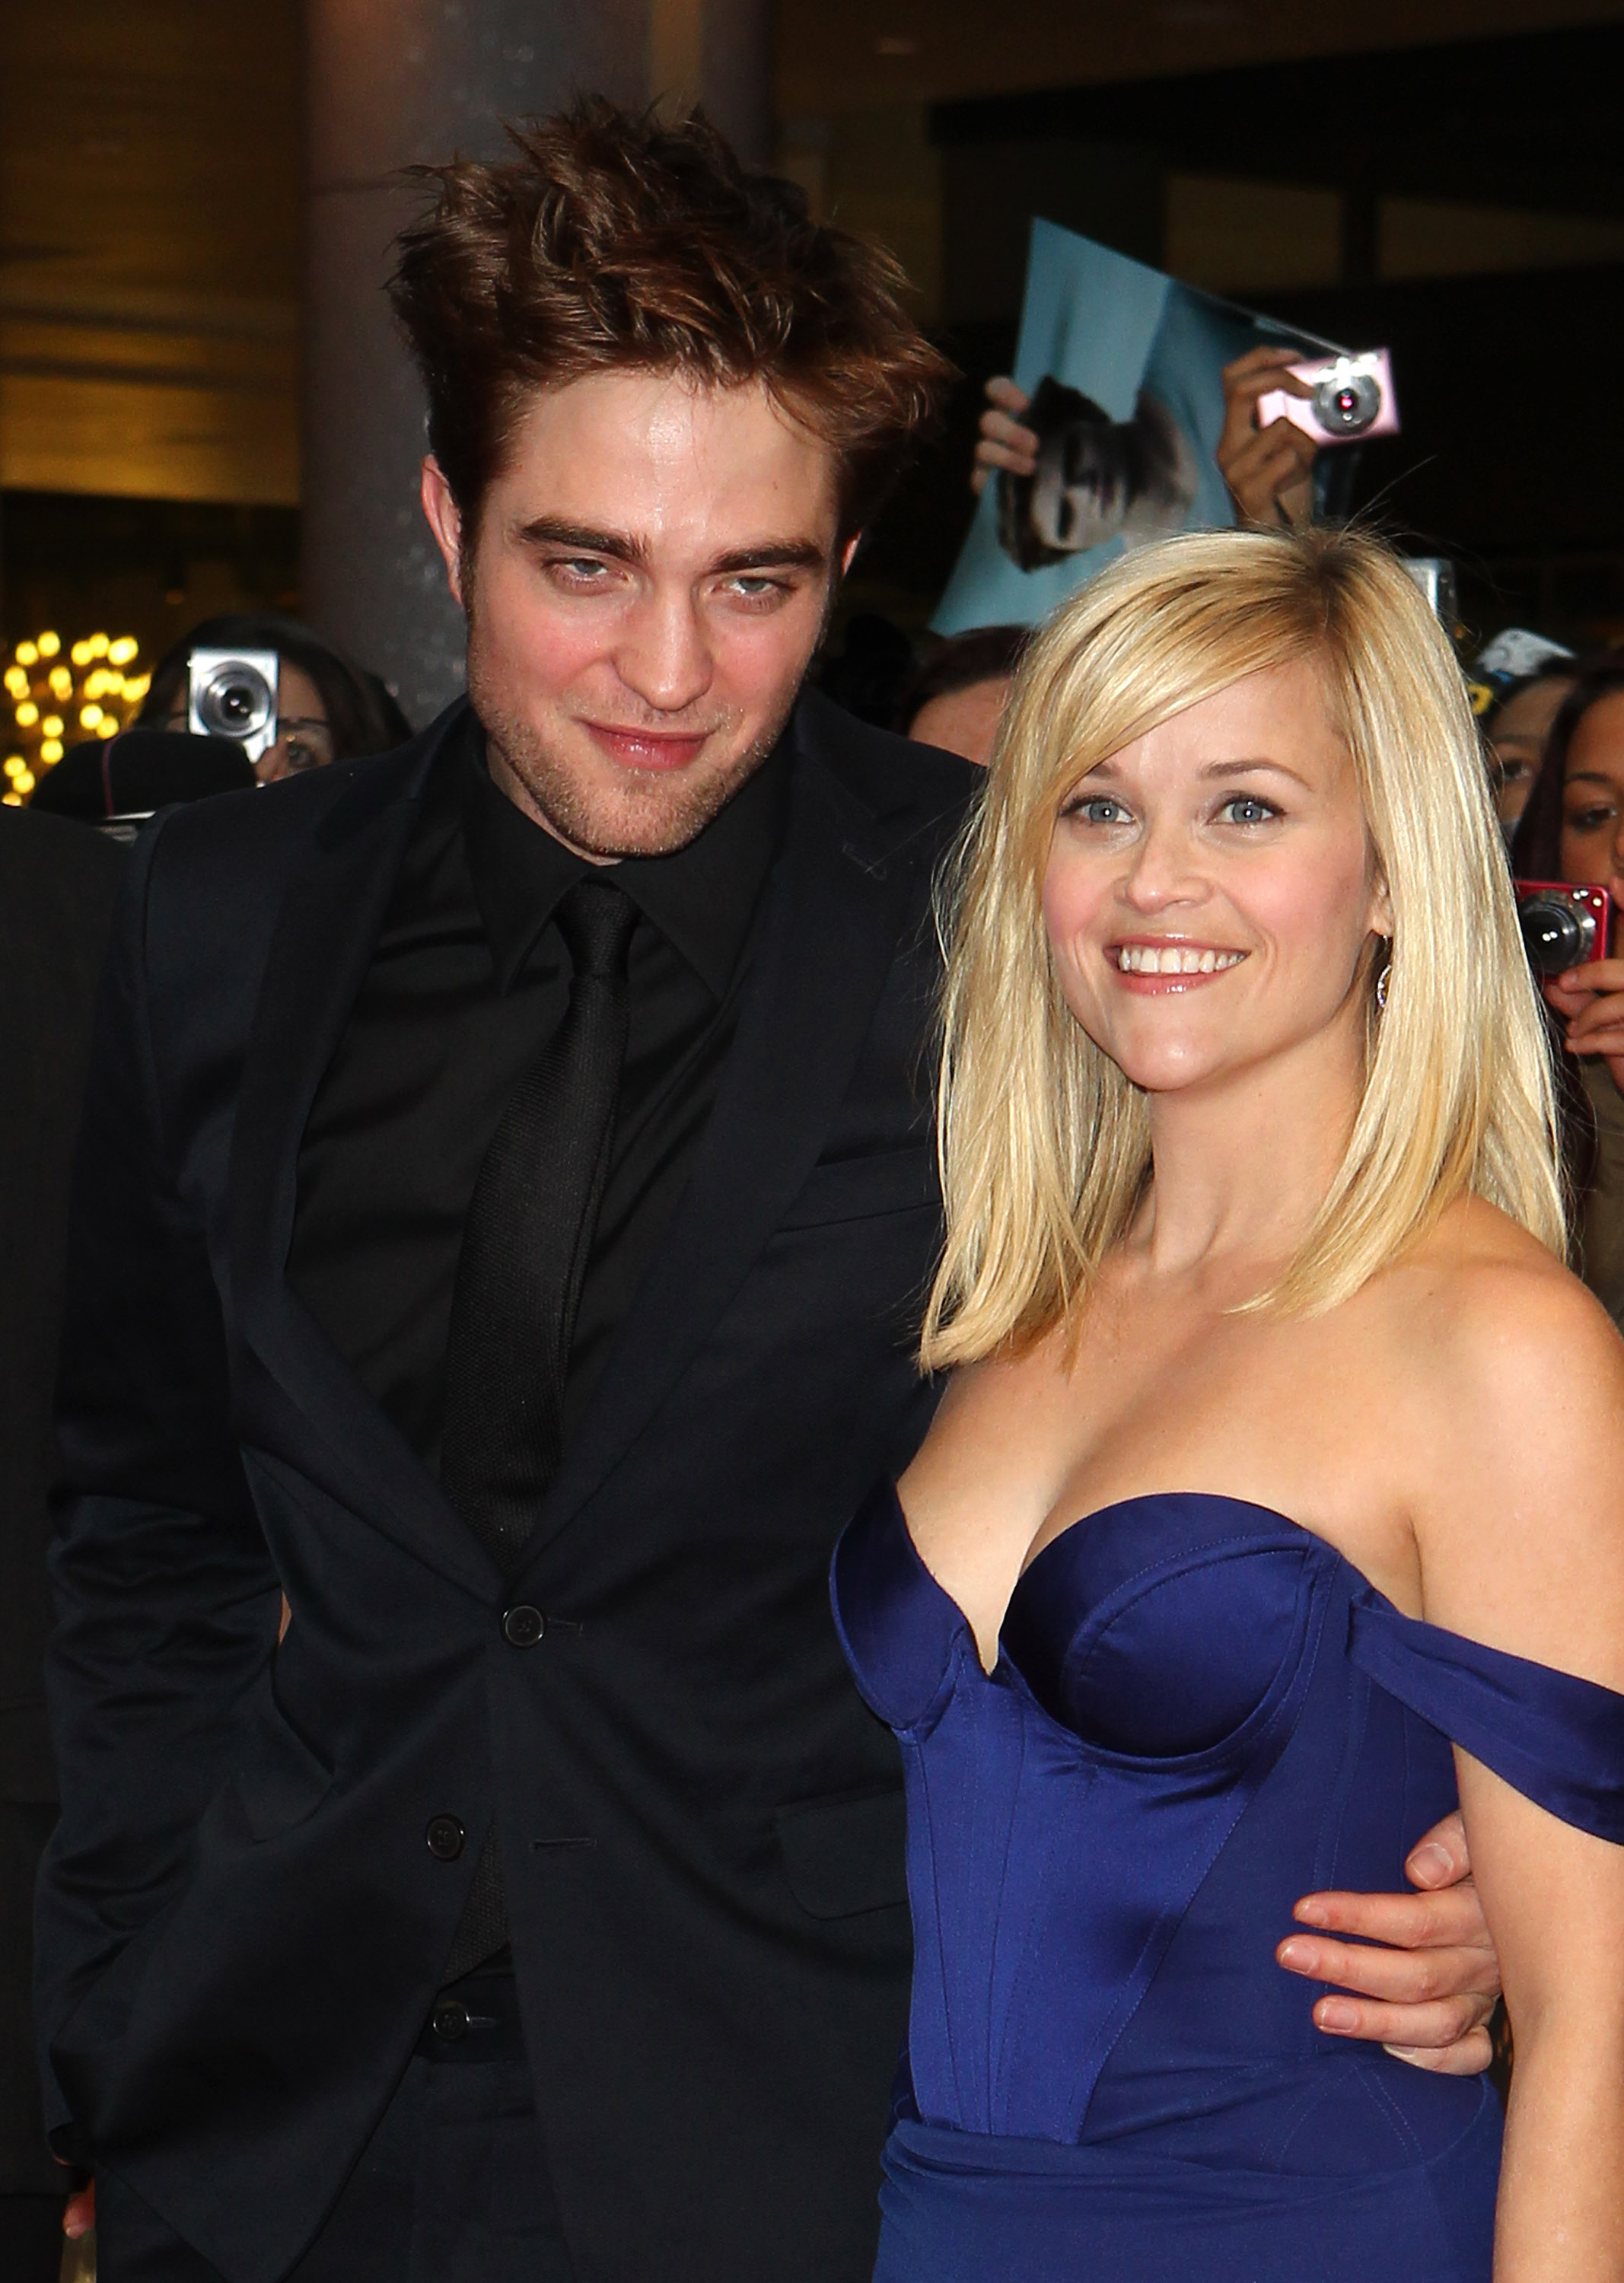 Reese Witherspoon i Robert Pattinson